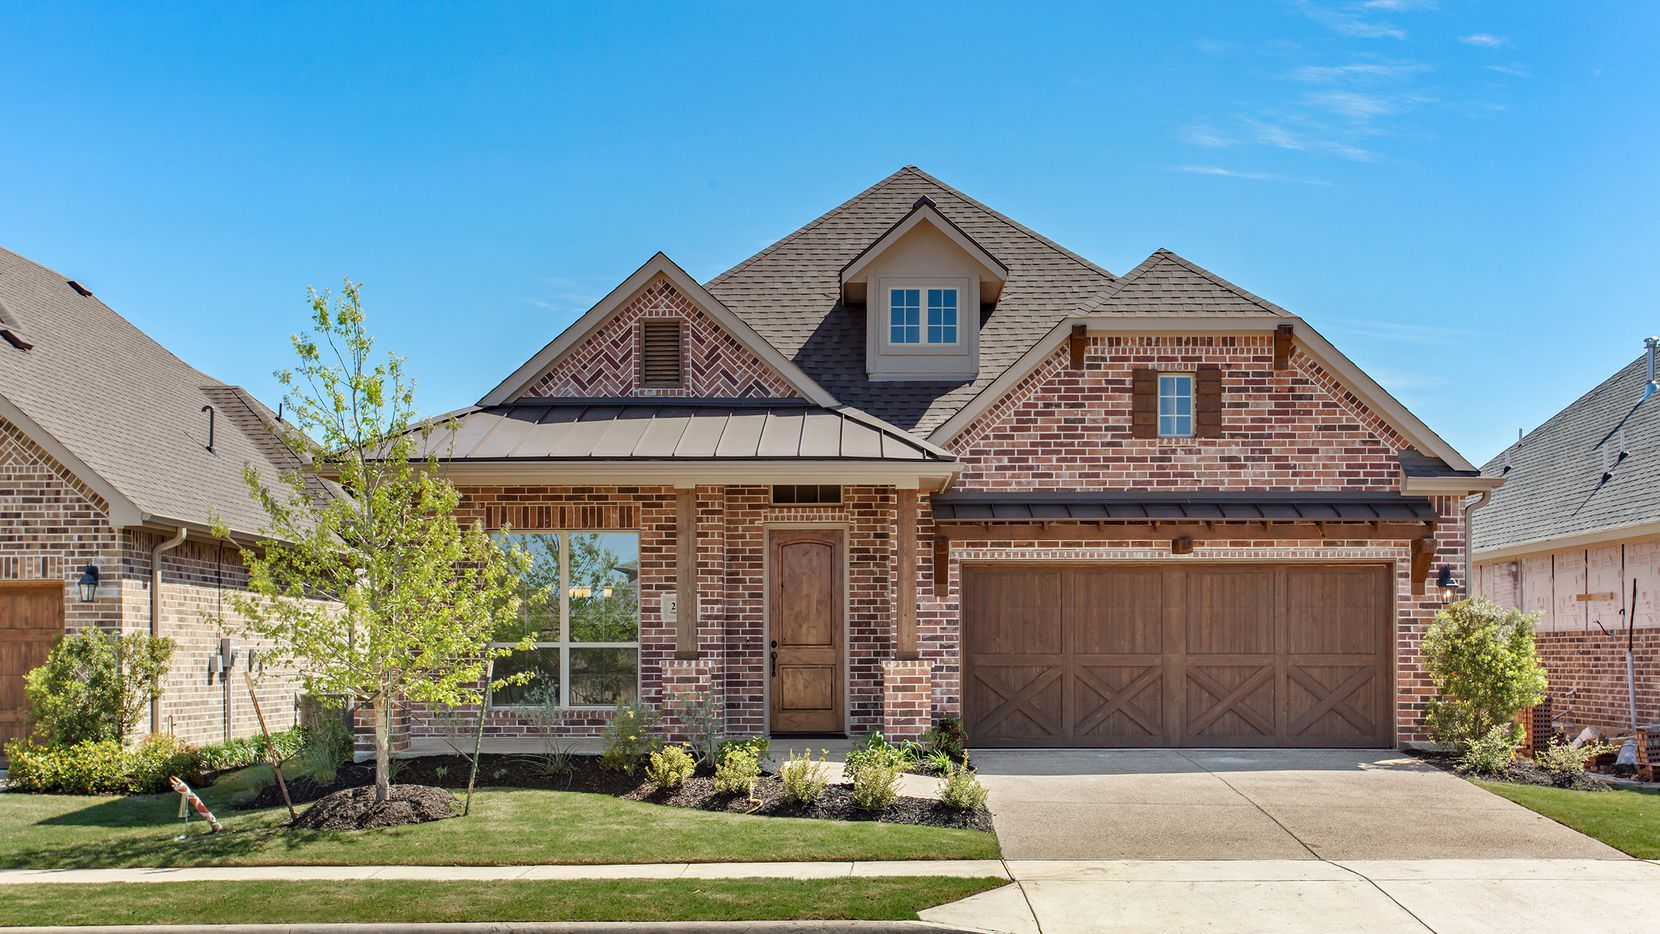 Buying opportunities are decreasing in Orchard Flower, a 55-plus community featuring low-maintenance living.